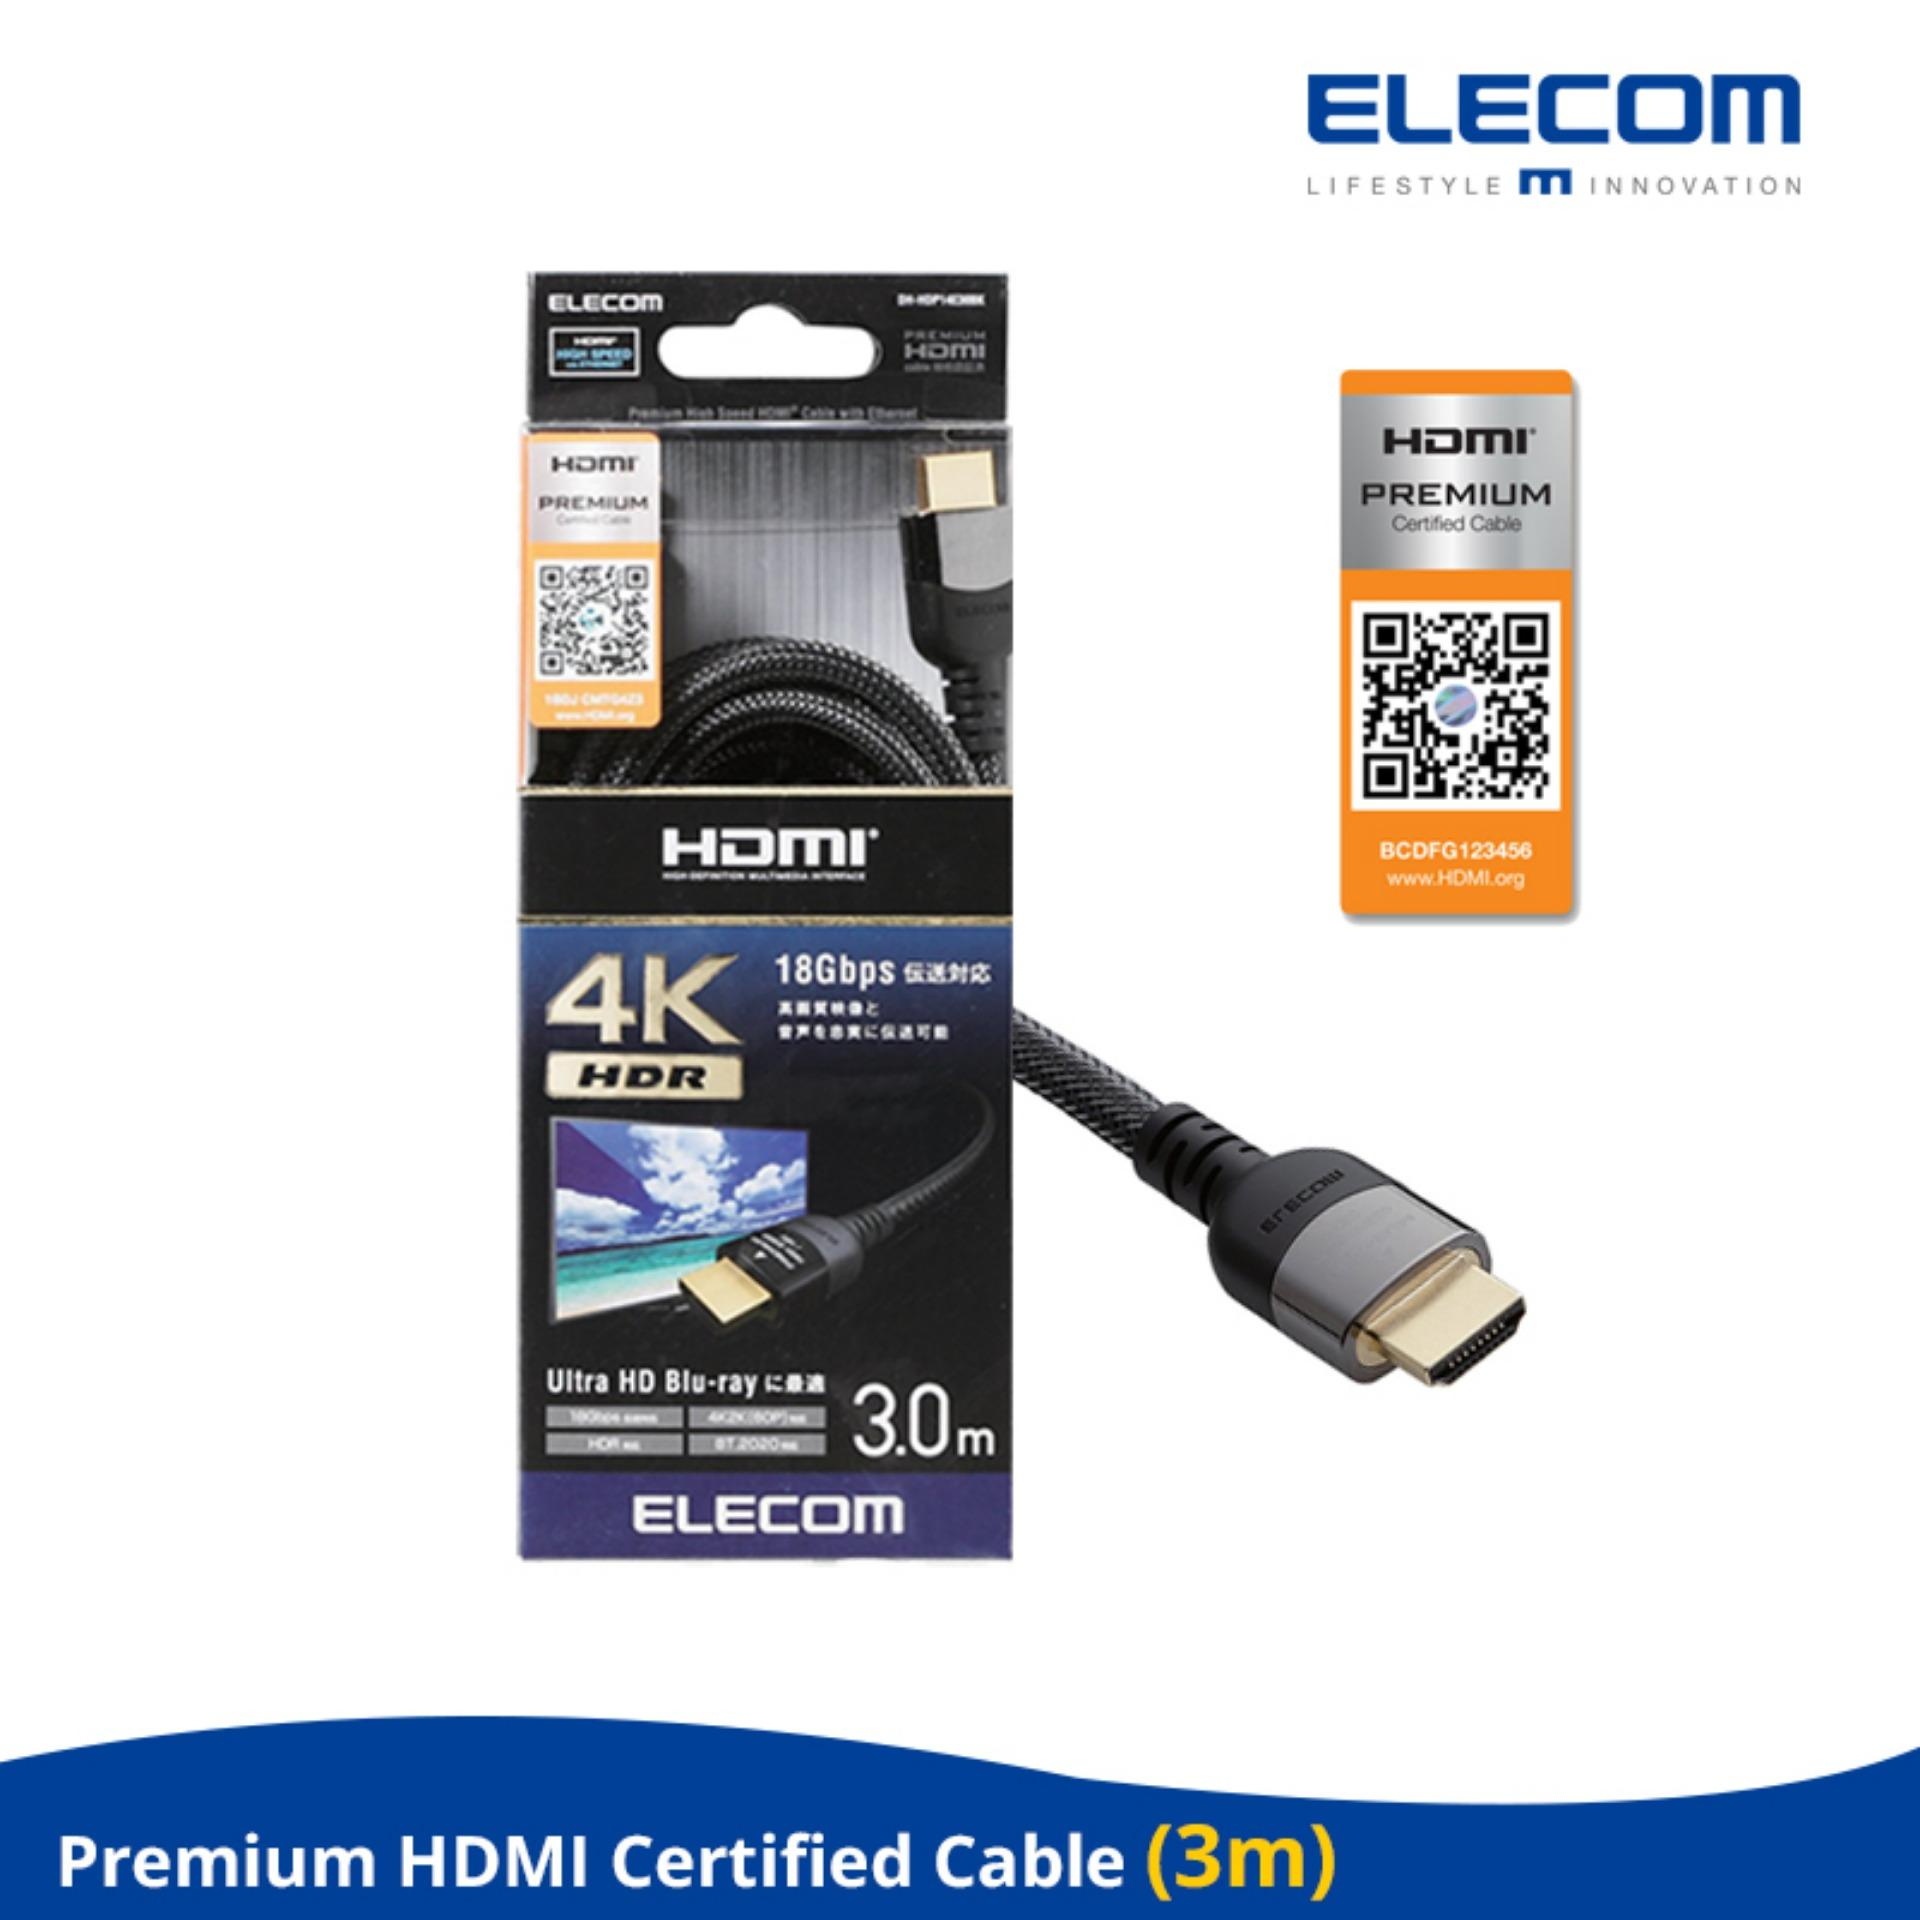 Premium Hdmi Certified Cable 18Gbps Transmission Ultra Hd Blu Ray High Grade Mode Uhd Tv 4K Ps3 Ps4 Wii Xbox 3M On Line